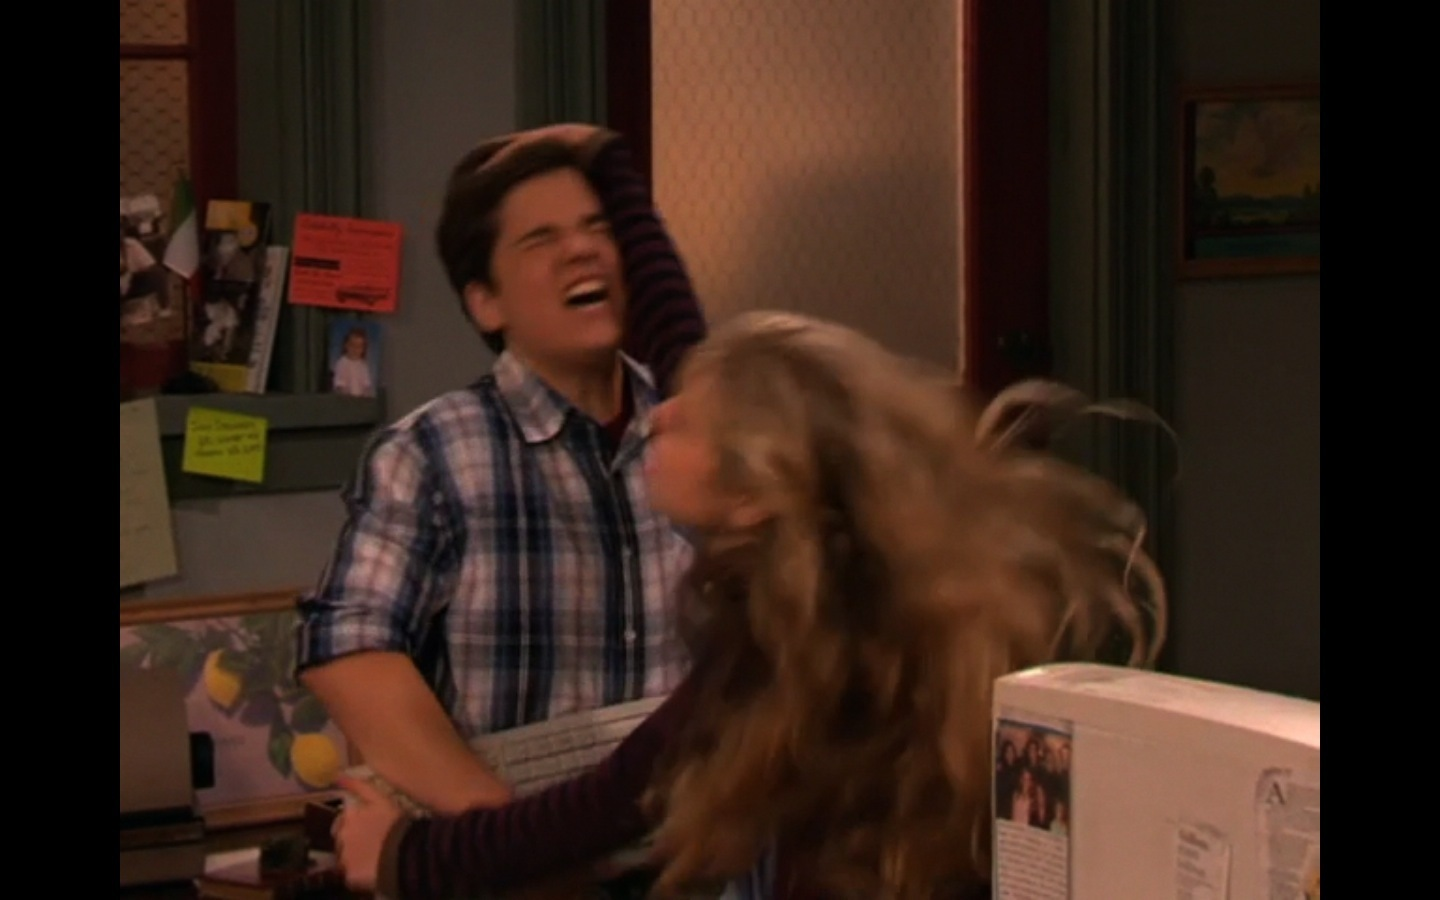 sam and freddie dating in real life Who-is-freddie-from-icarly-dating-in-real-life: who is freddie from icarly dating in real life then sam and freddie had this arc of three or four episodes.